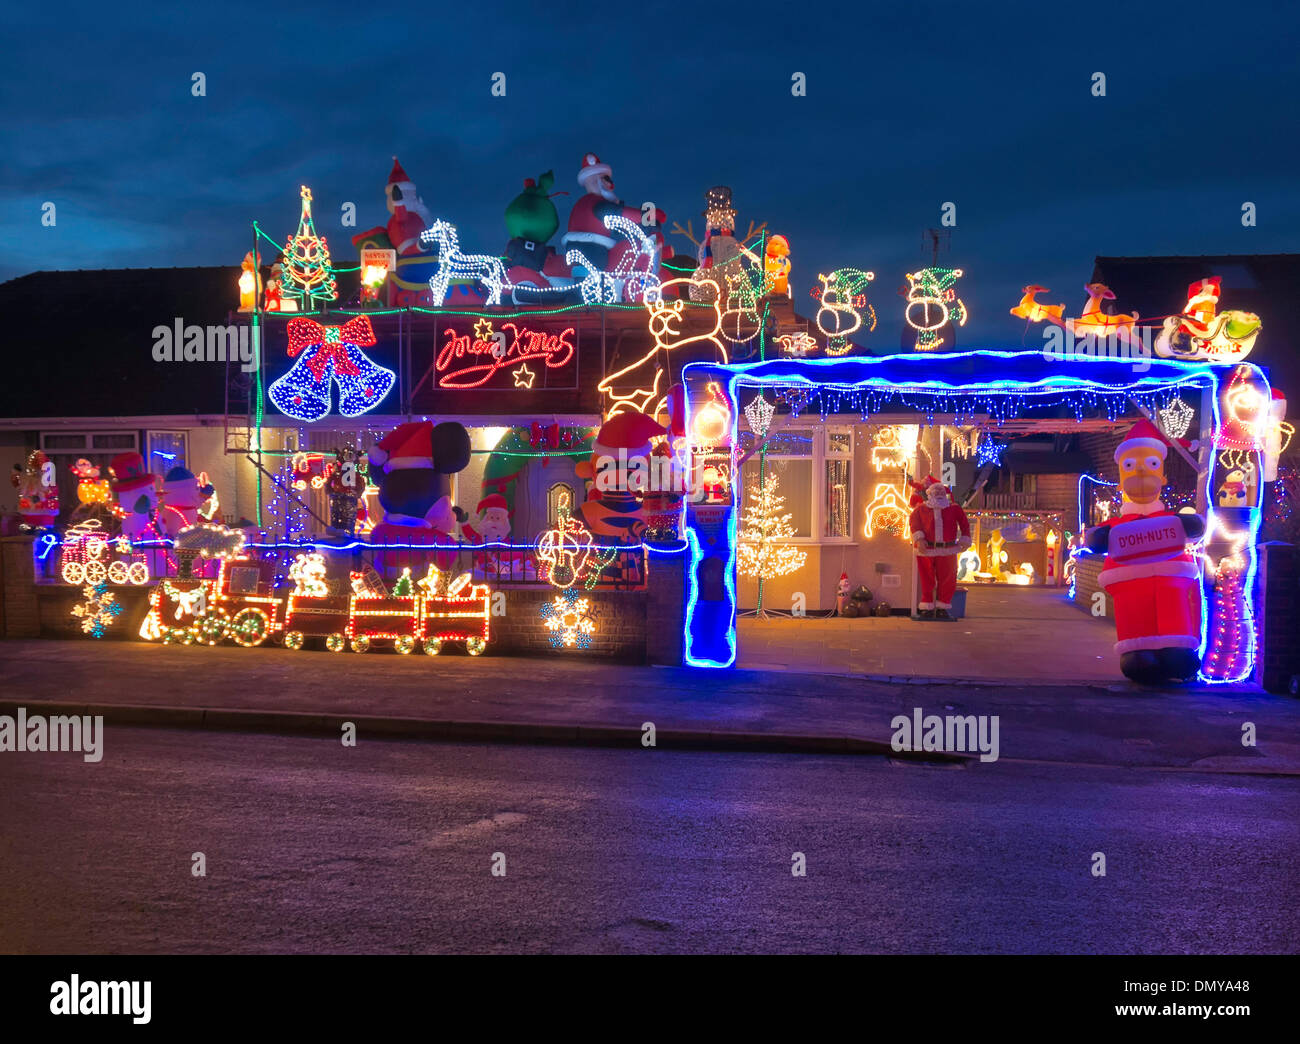 Preston Lancashire UK 17th December 2013. Christmas lights decoration on a Preston house to raise funds for a local hospice. Credit Sue Burton/Alamy ...  sc 1 st  Alamy & Preston Lancashire UK 17th December 2013. Christmas lights ... azcodes.com